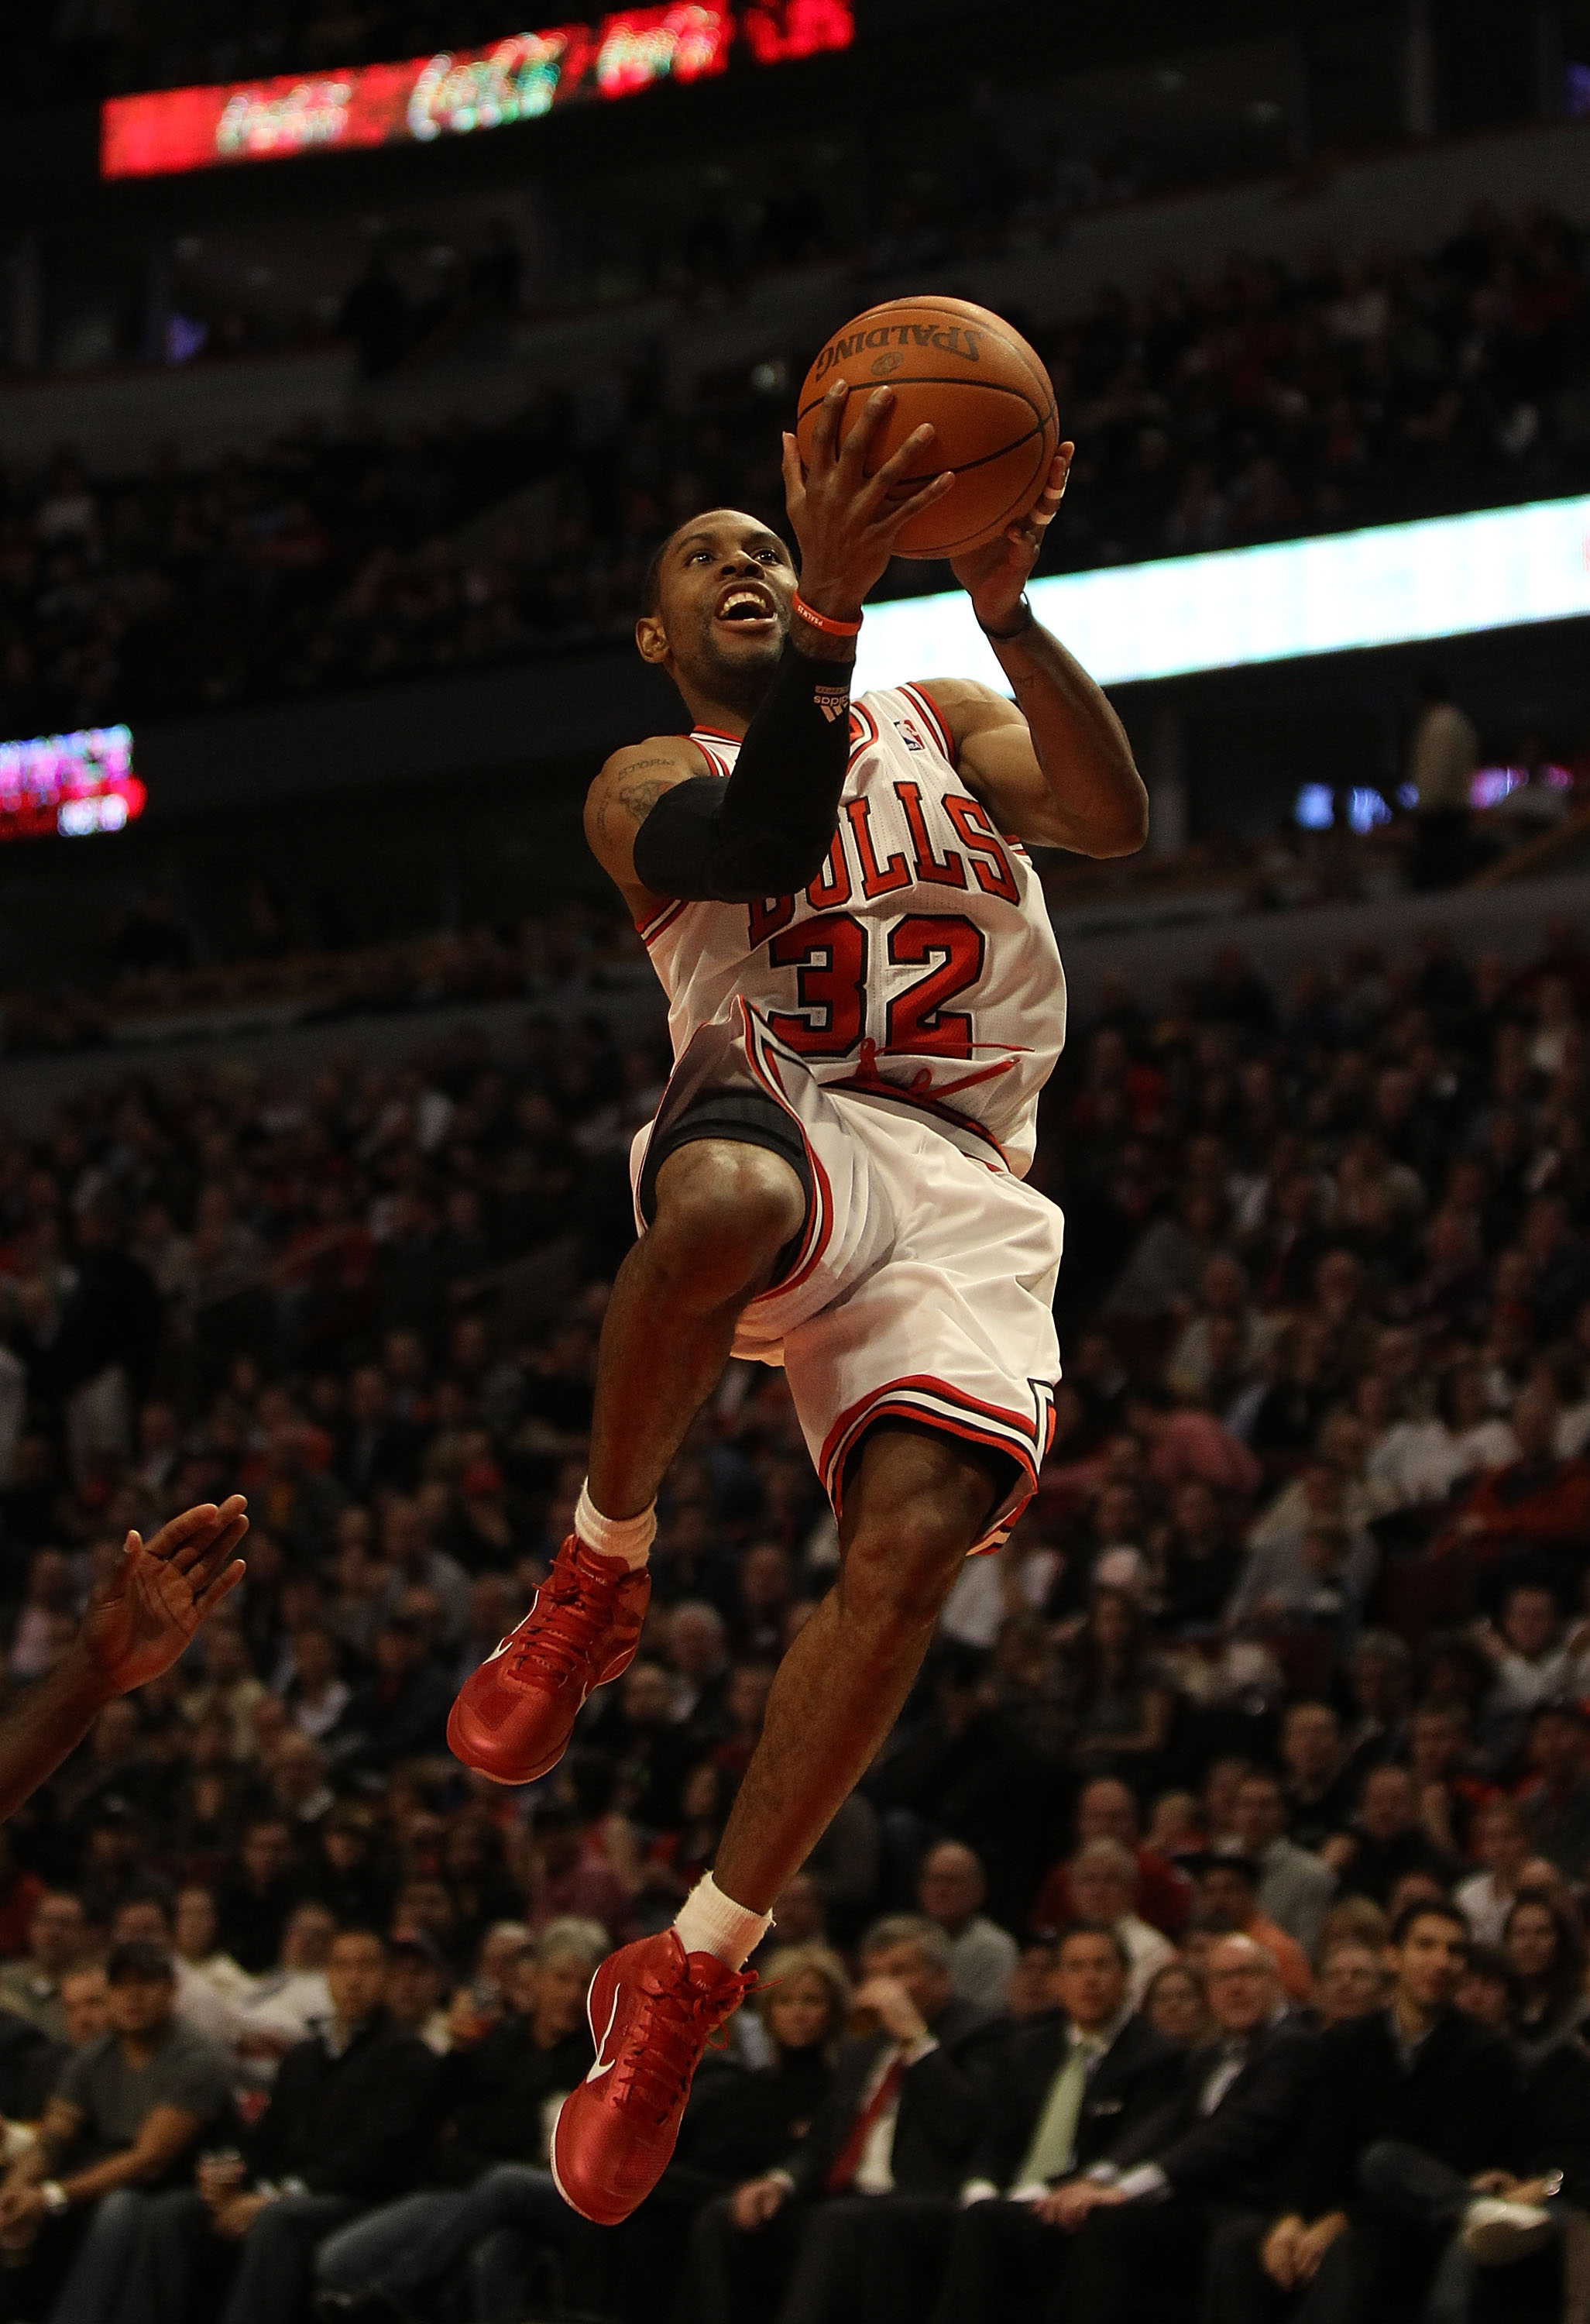 CHICAGO, IL - DECEMBER 01: C.J. Watson #32 of the Chicago Bulls drives to the basket against the Orlando Magic at the United Center on December 1, 2010 in Chicago, Illinois. The Magic defeated the Bulls 107-78. NOTE TO USER: User expressly acknowledges an